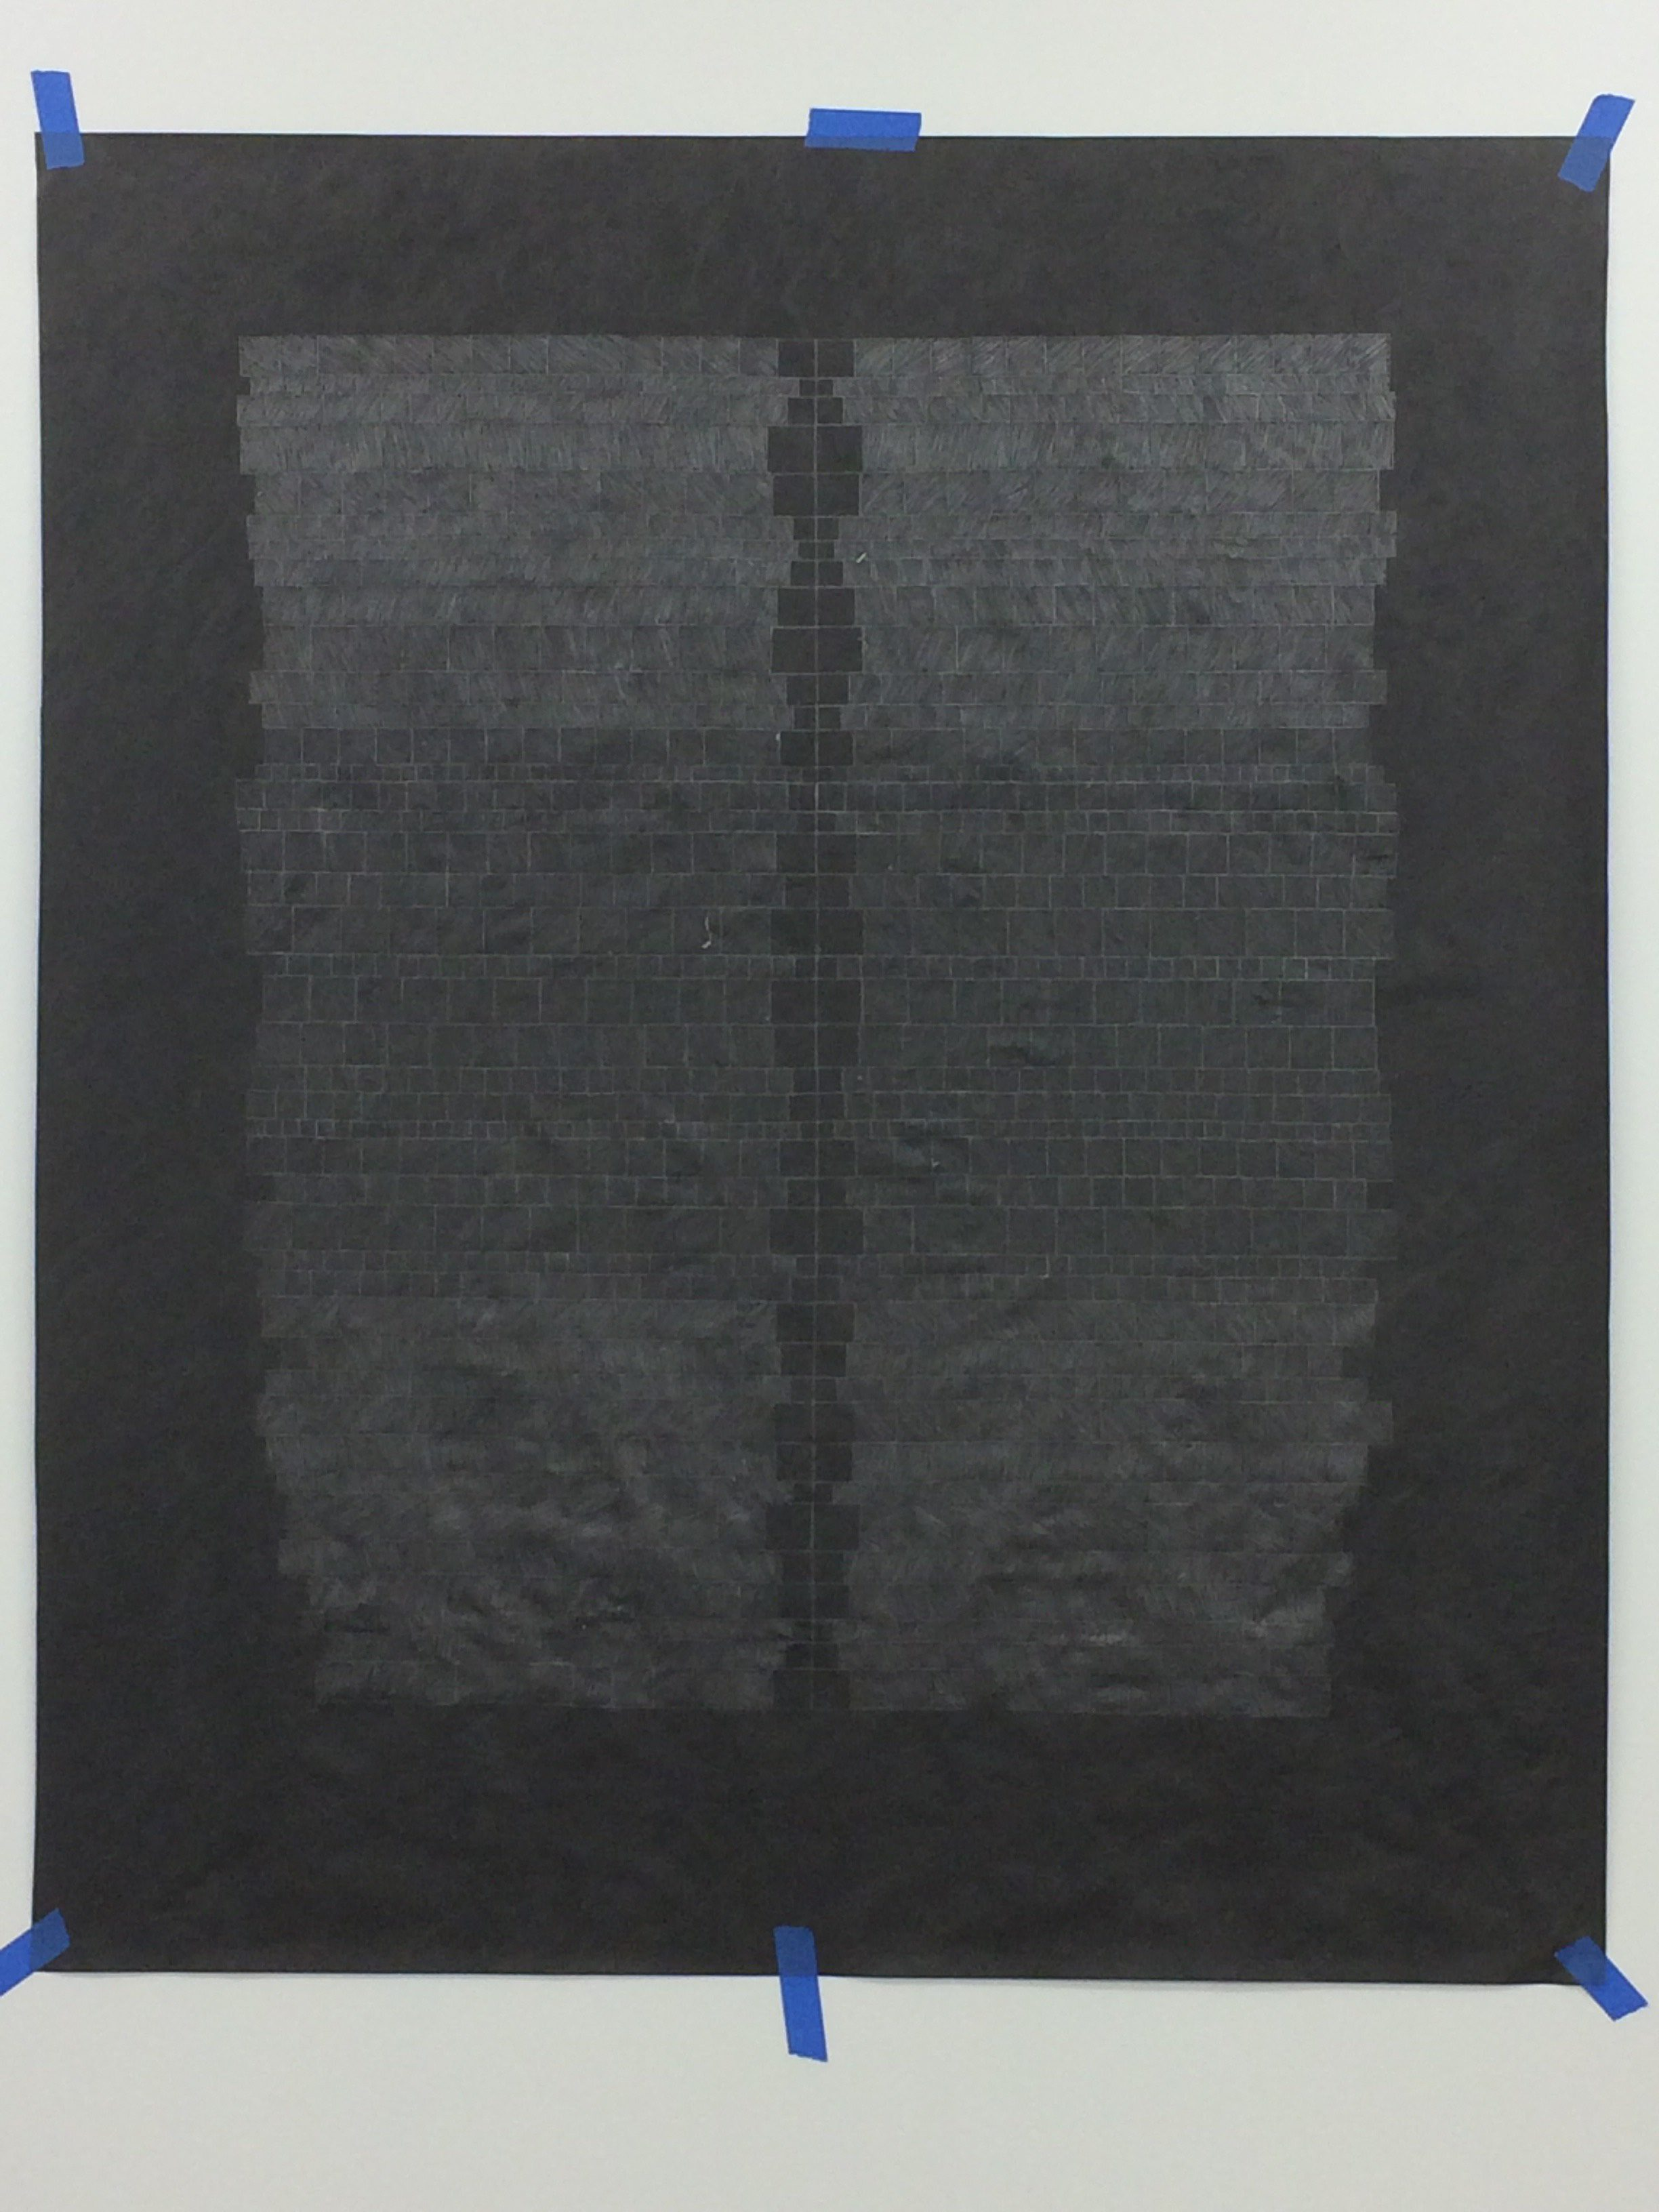 "Untitled (Black Tyvek #4), 2017, graphite on black tyvek, 50x60"", photo courtesy of Joseph Shetler"